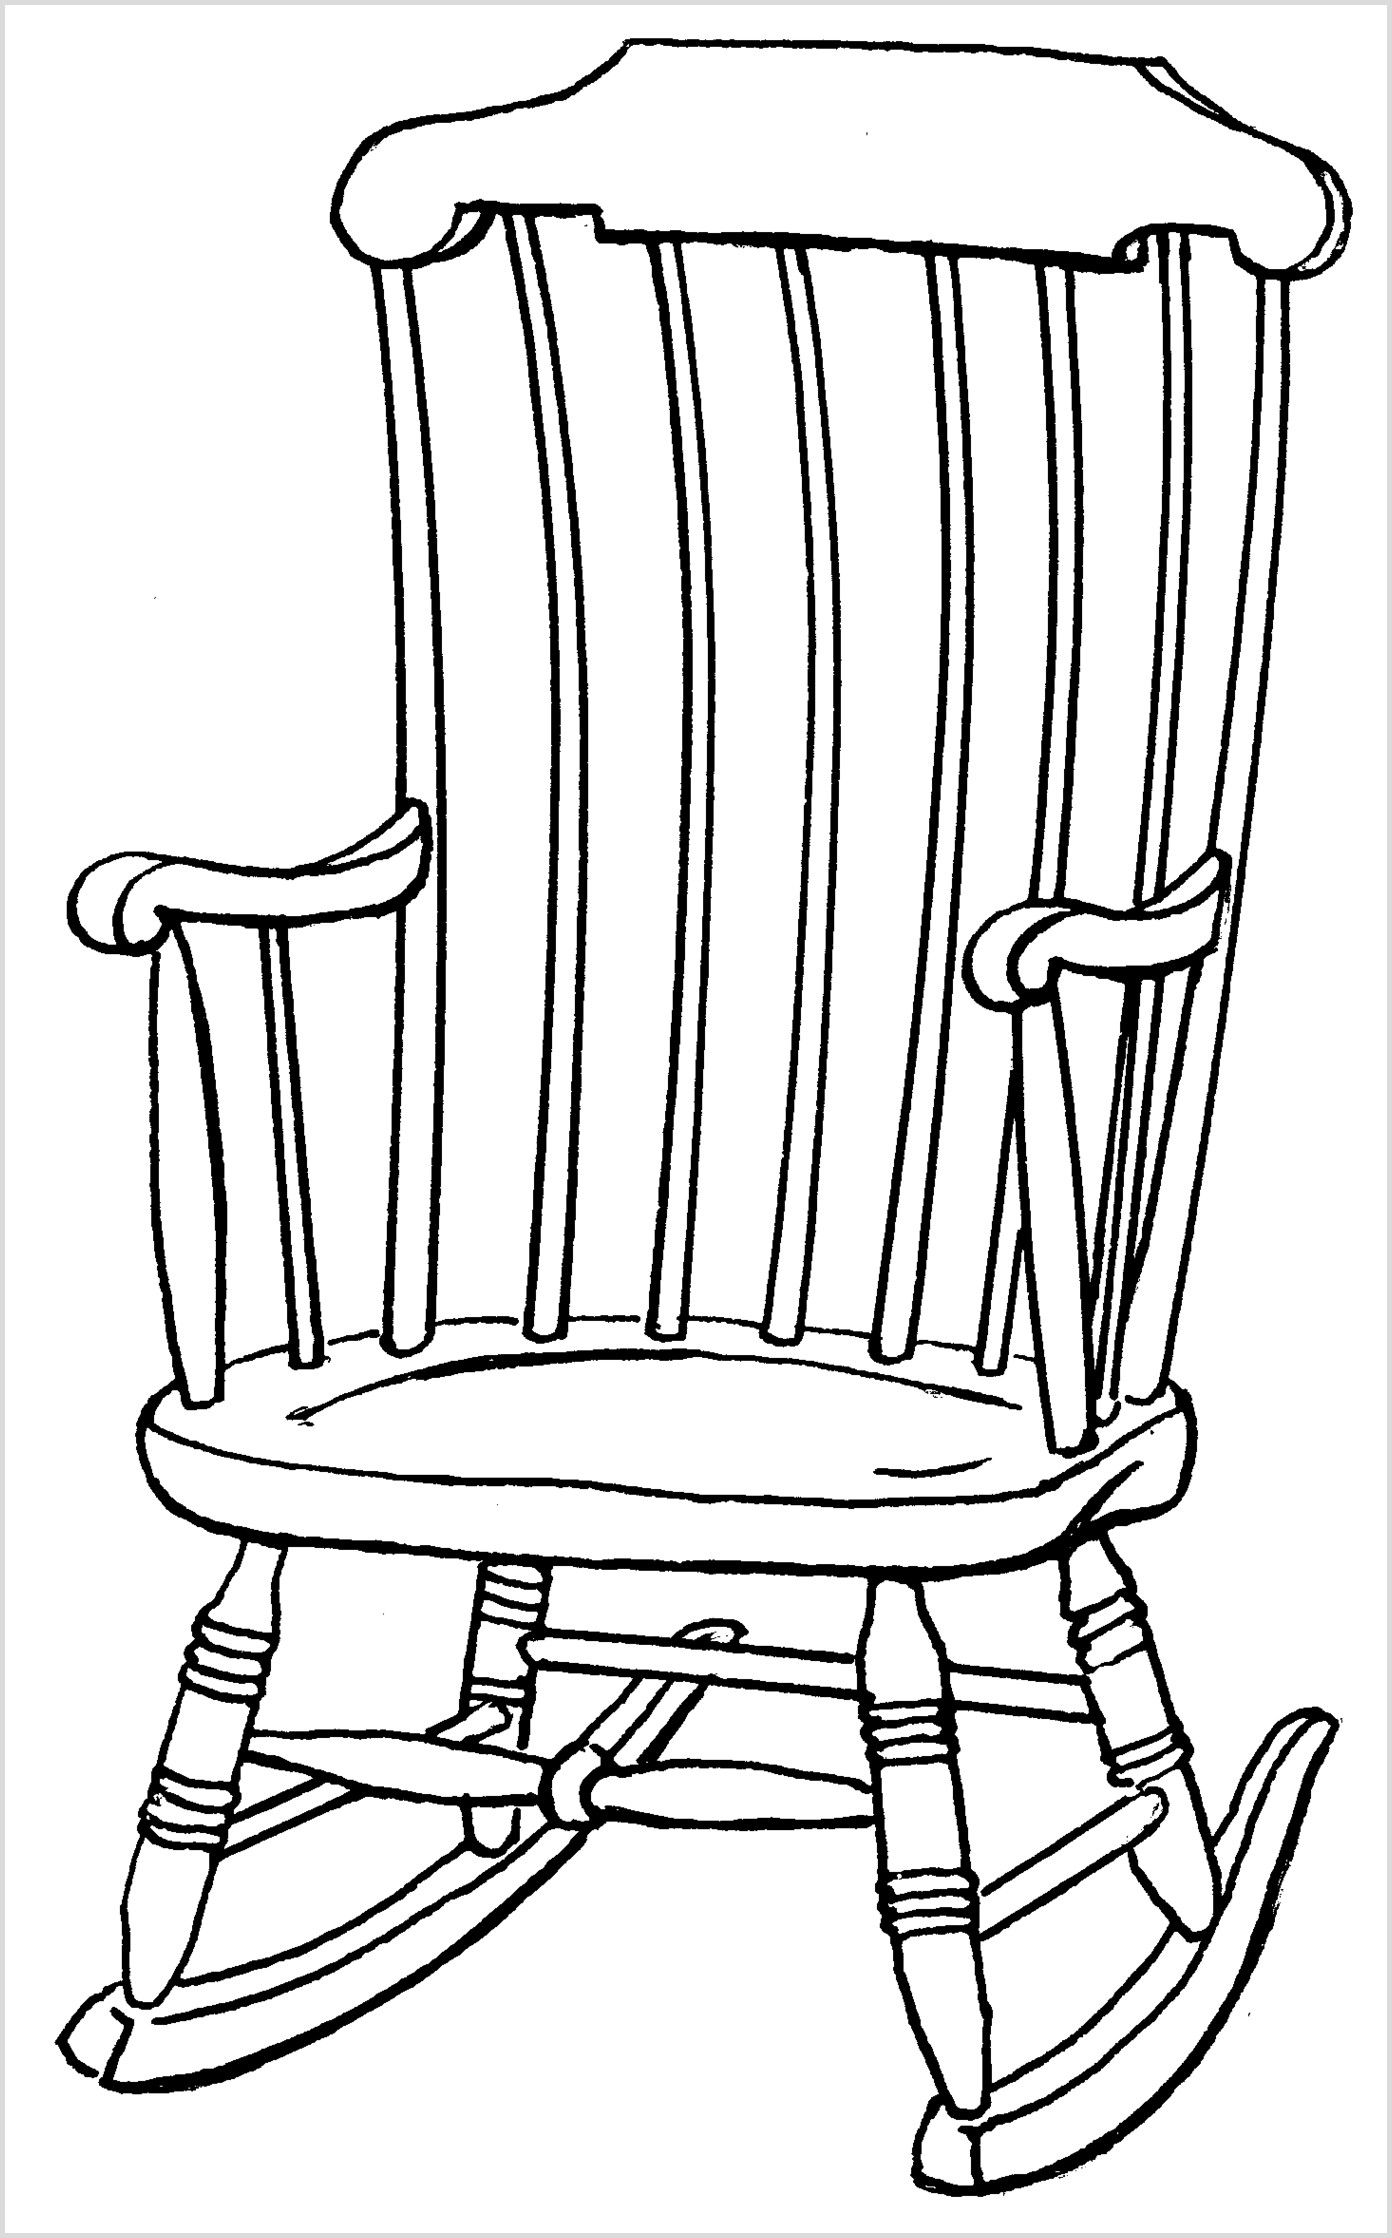 64 Reference Of Chair Top View Clip Art In 2020 Chair Drawing White Picture Black And White Pictures